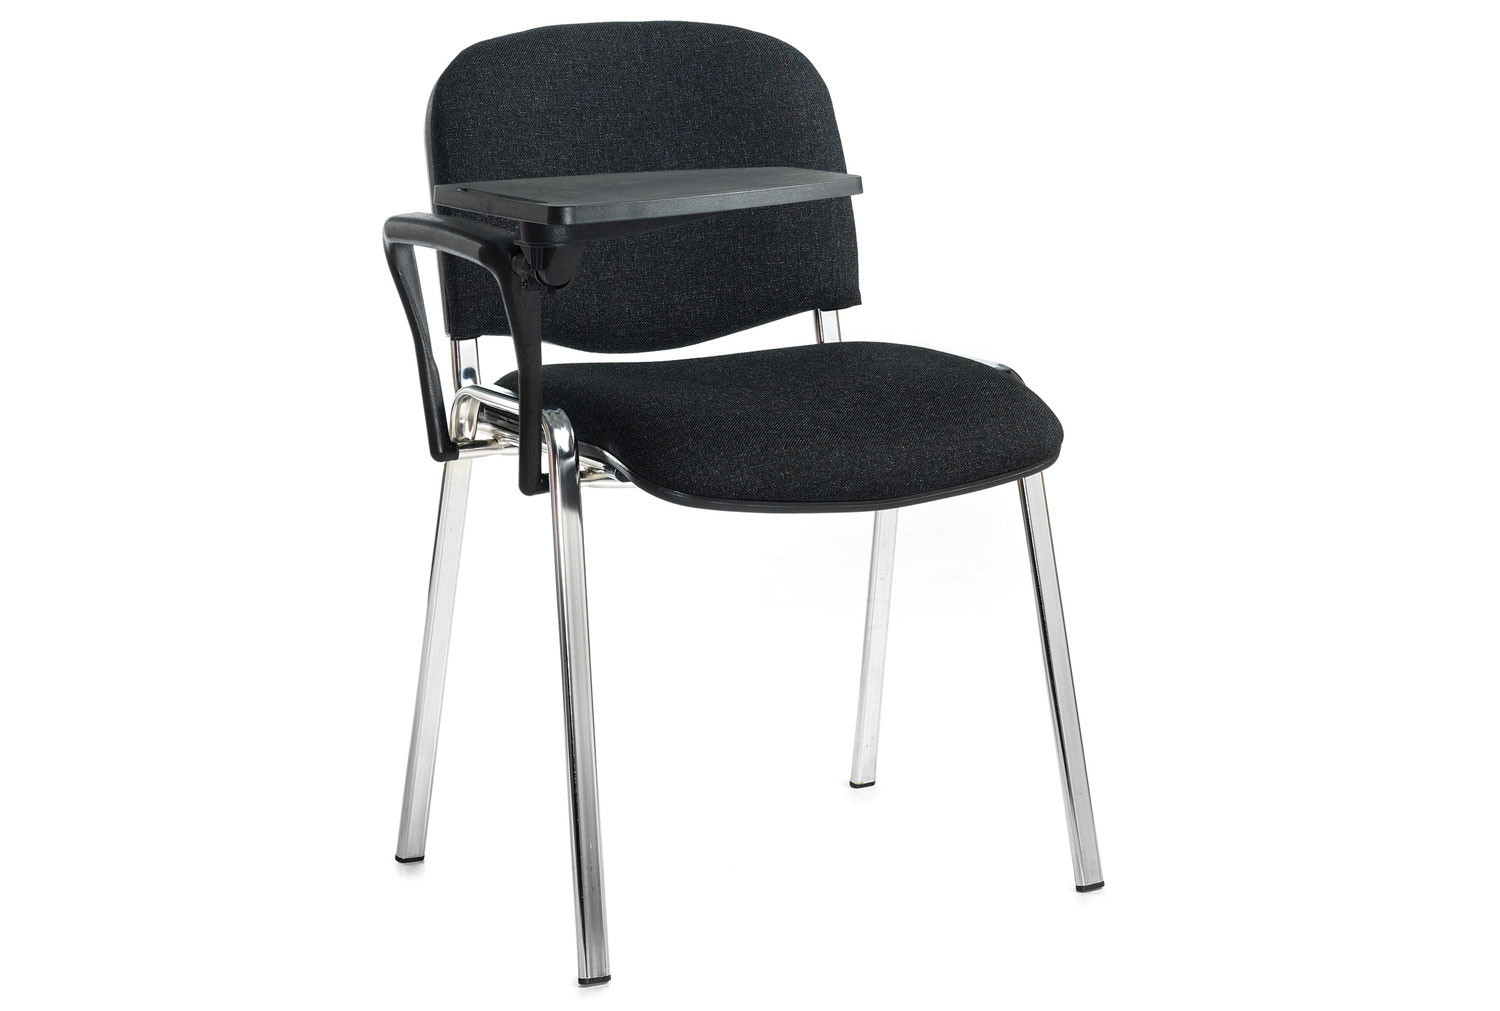 Pack Of 4 Chrome Frame Conference Chairs With Writing Tablets